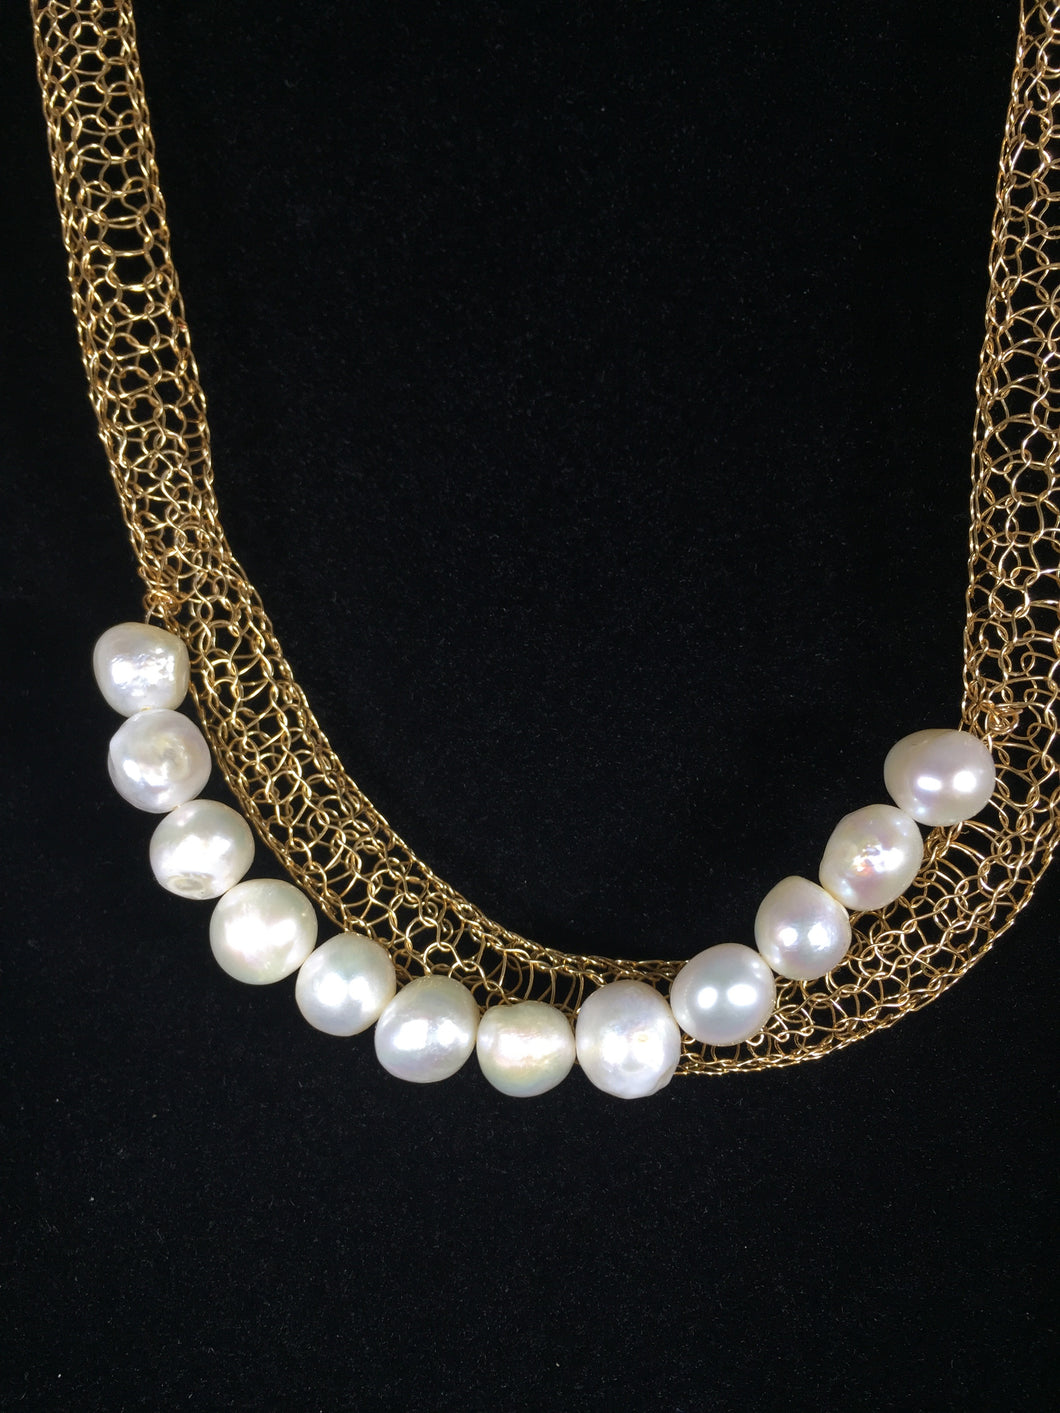 Gold with draped pearls necklace